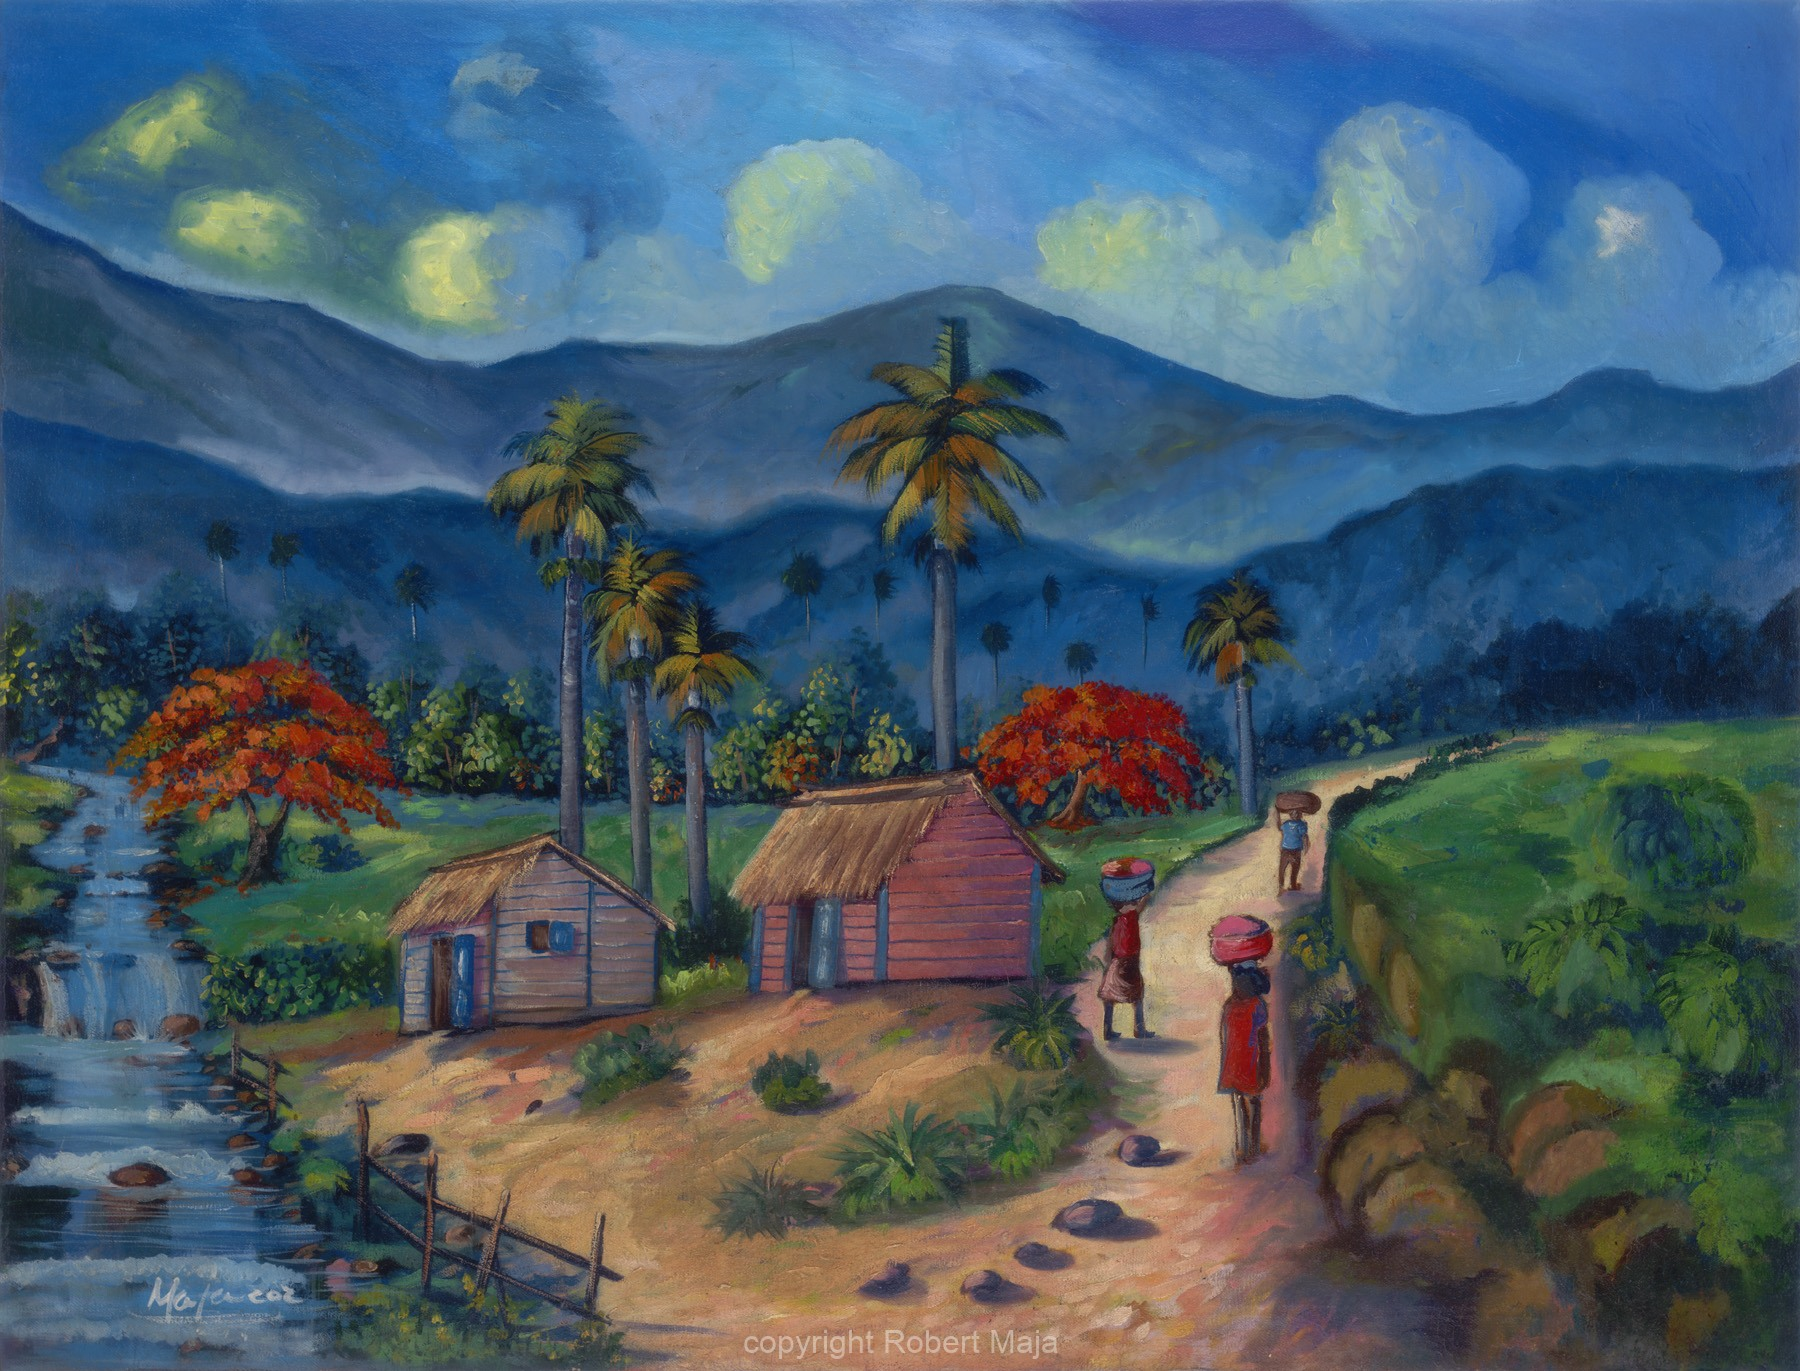 RM1 (Dominican Landscape) 30 x 40-1.jpg